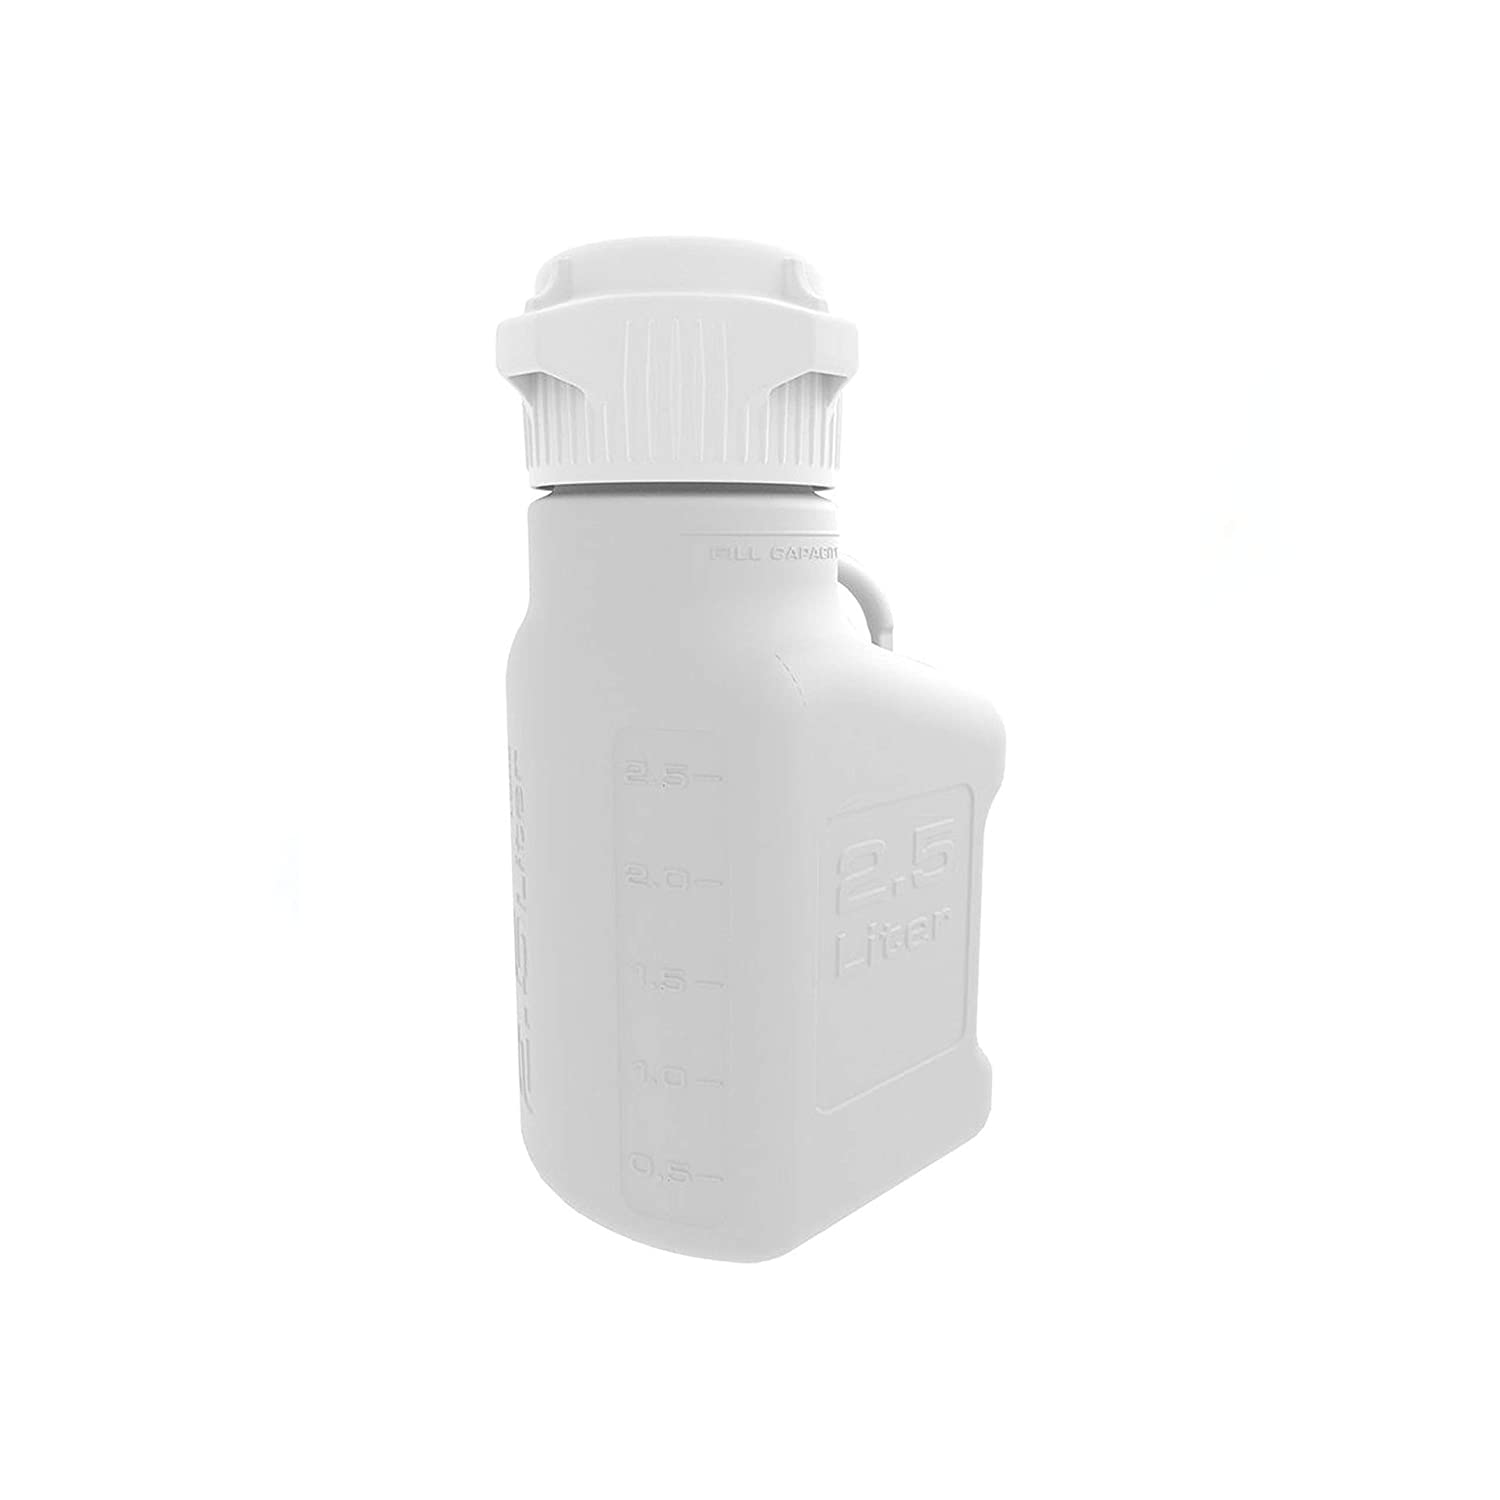 free At the price shipping Foxx Life Sciences EZgrip 2.5L 0.5 Saving Gal Carbo Space HDPE